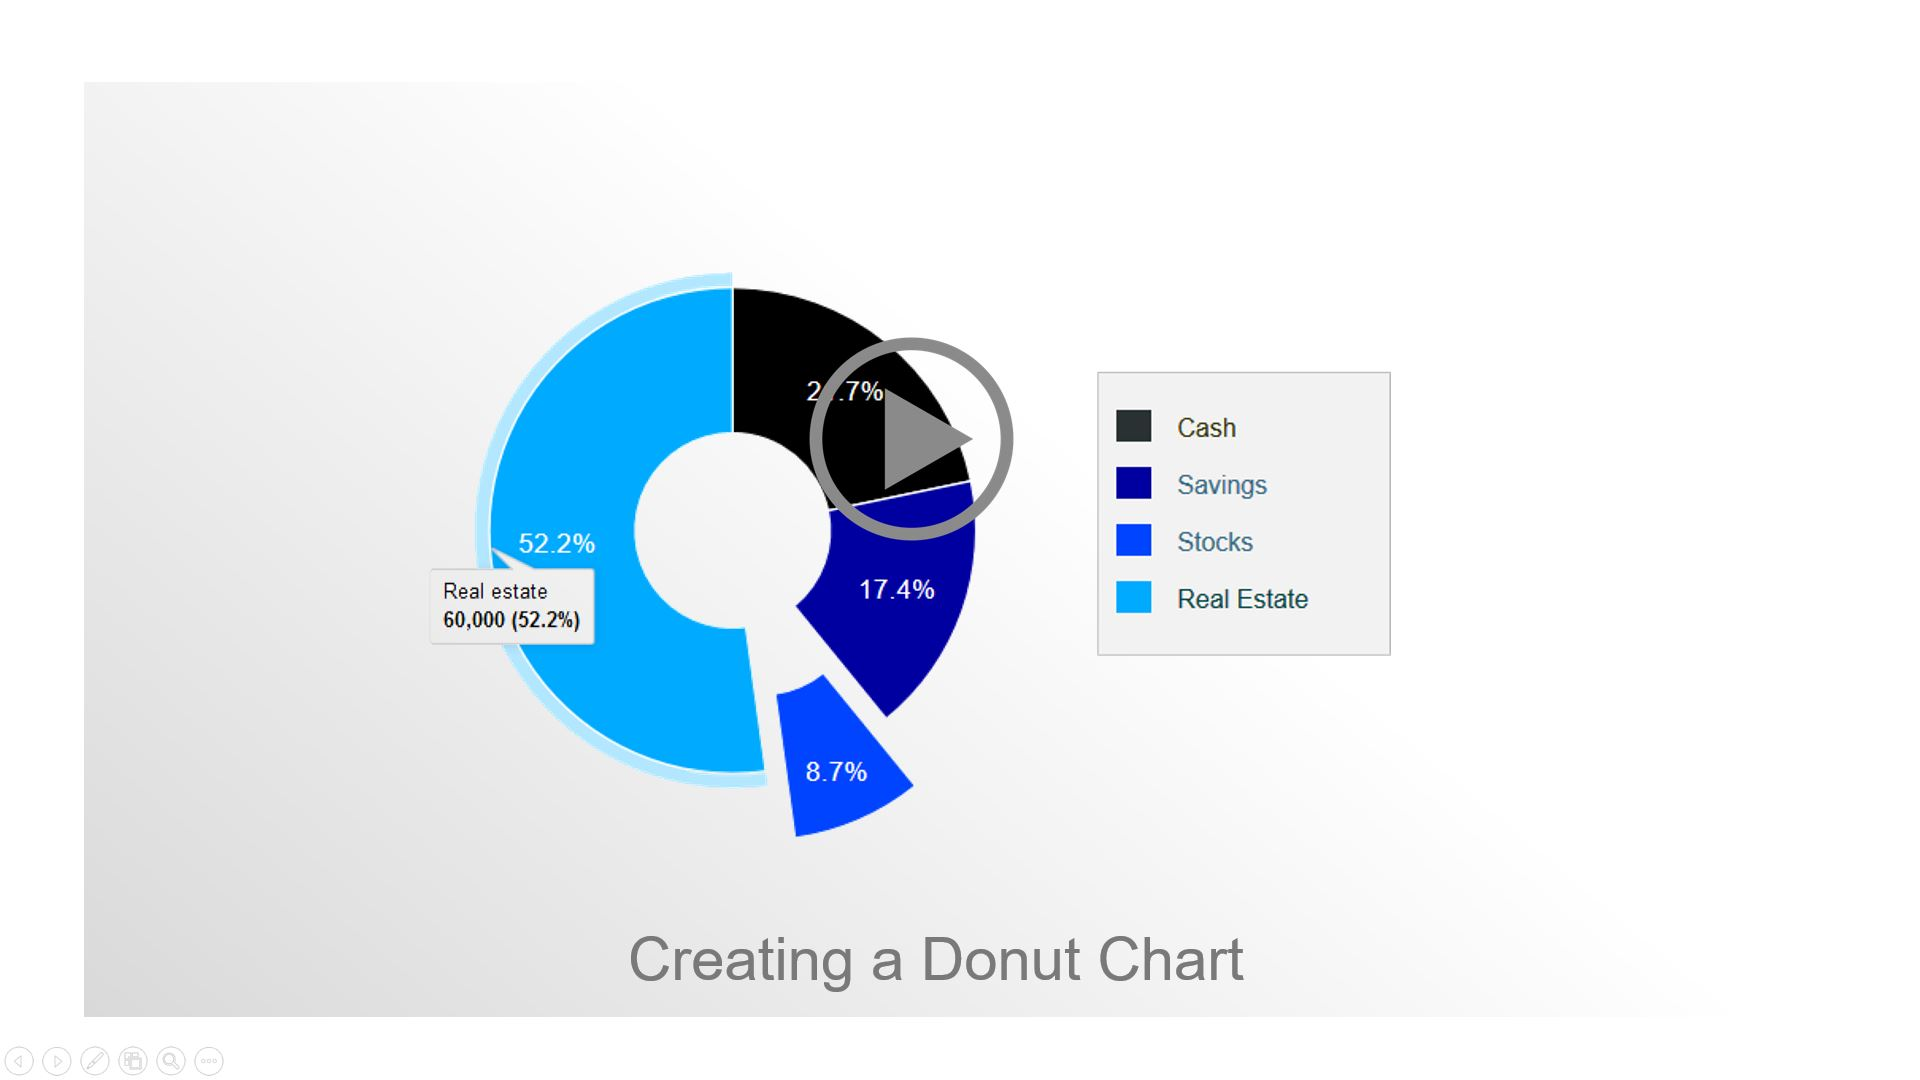 Creating a donut chart in Axure, Tutorial